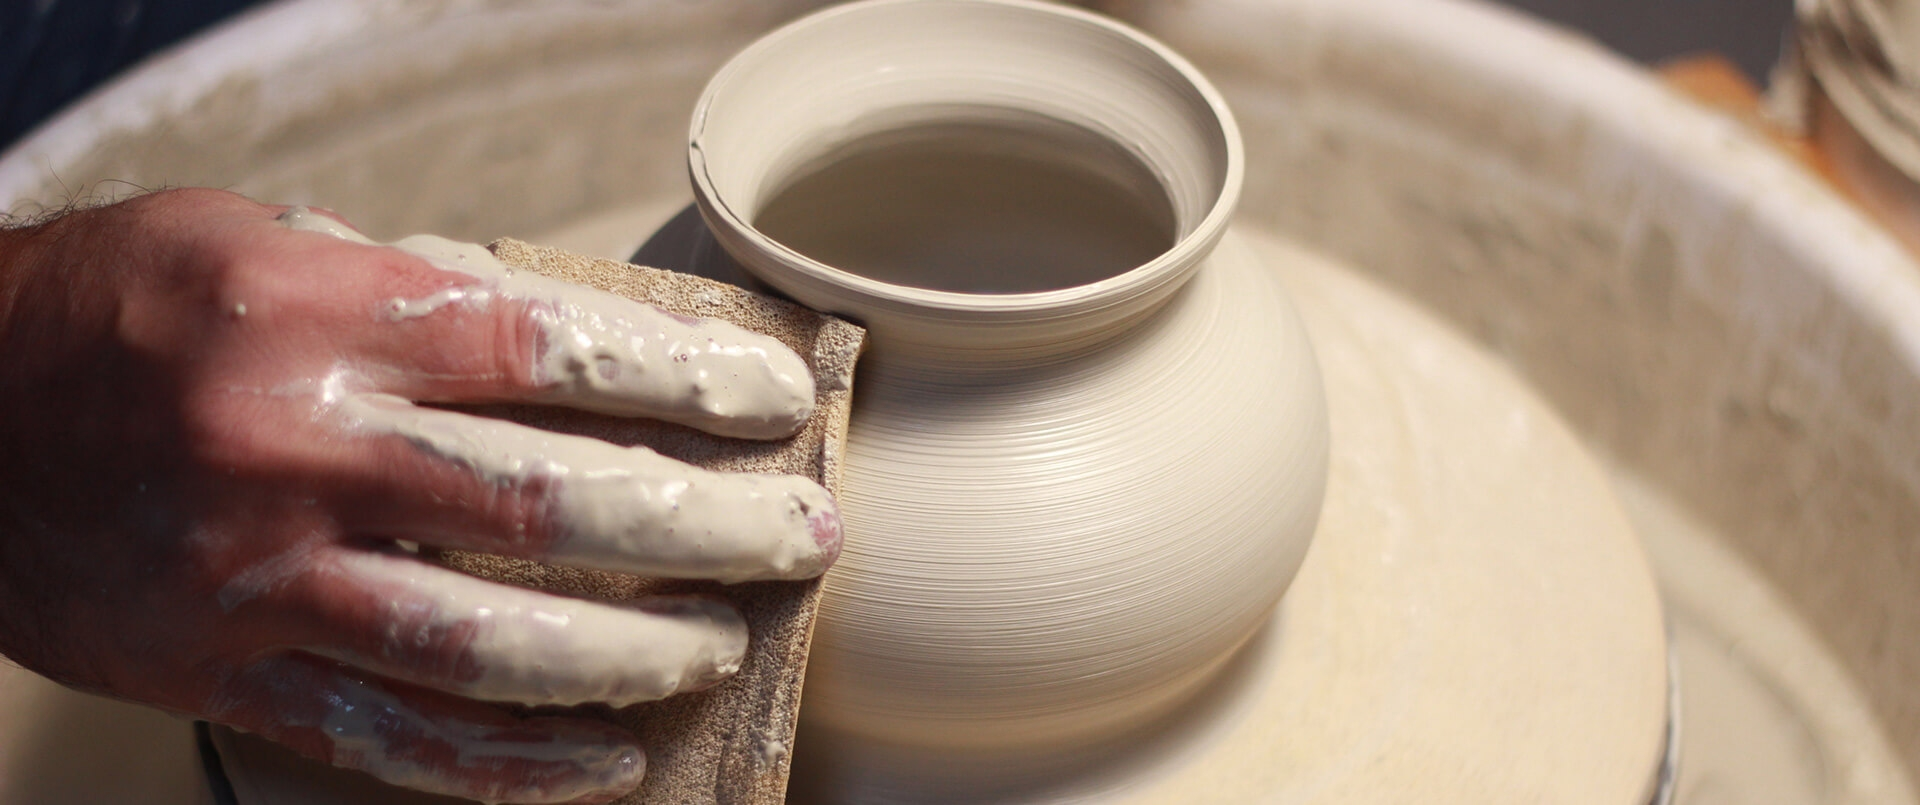 Bring clay to a potters wheel